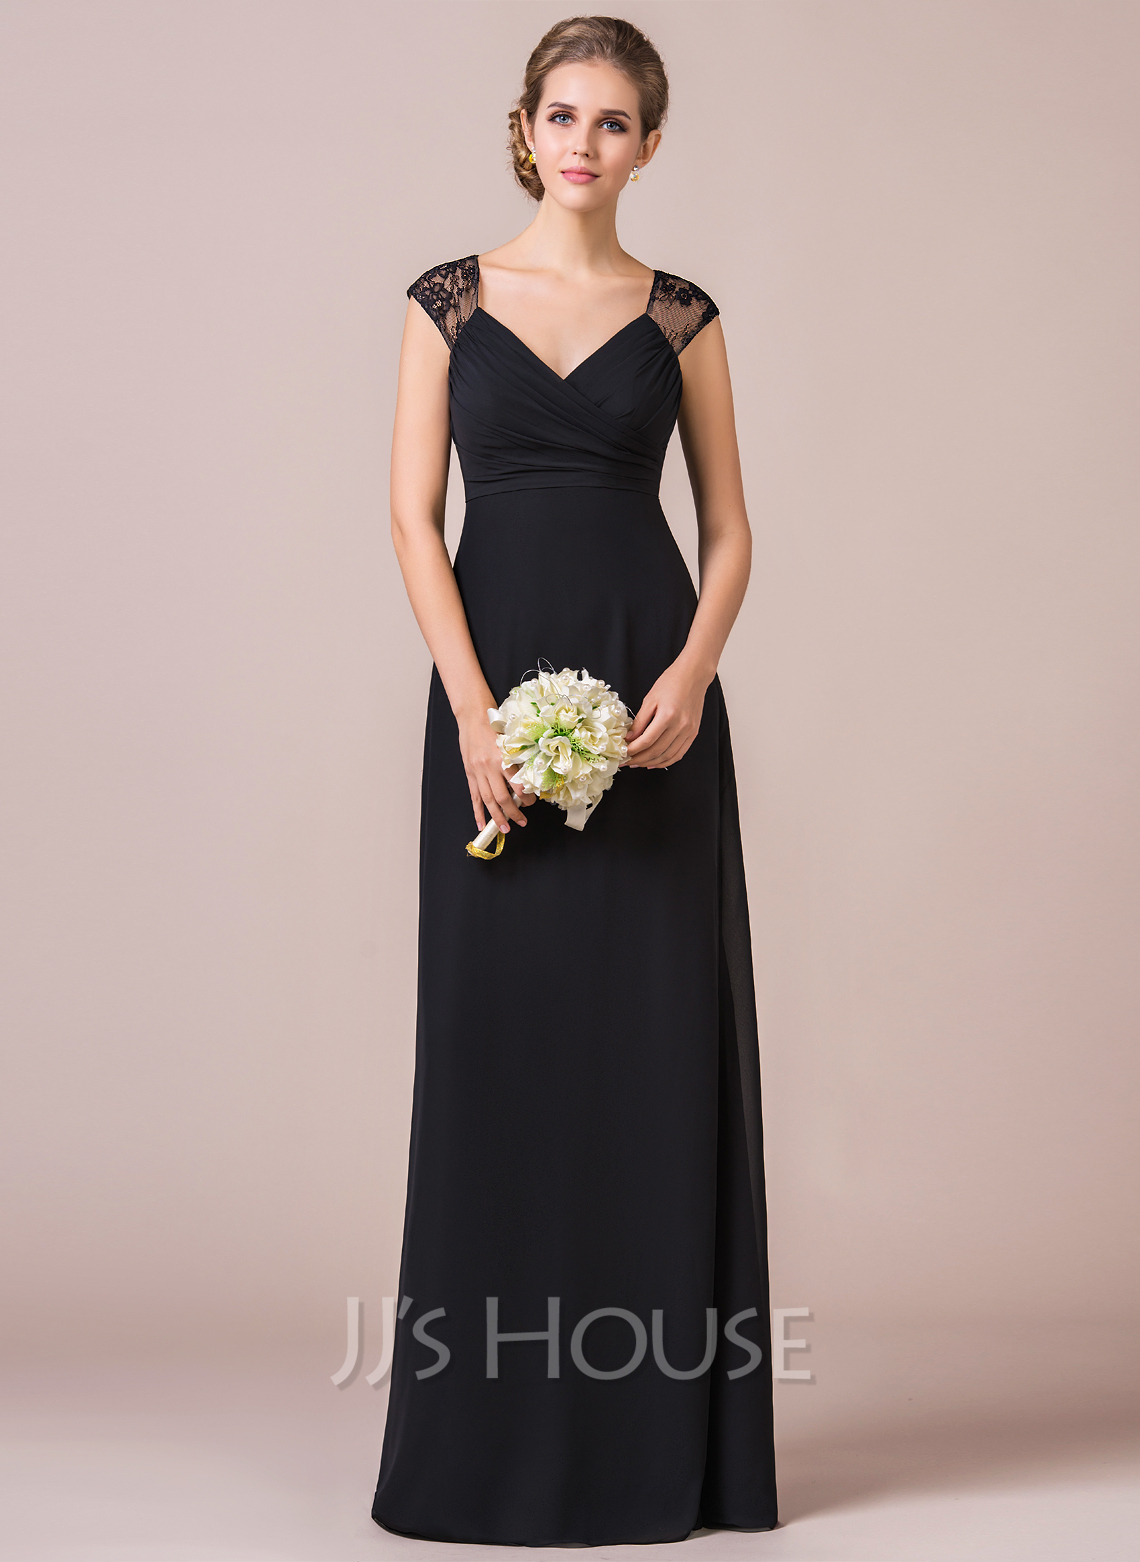 32740934116ec Empire Cap Sleeve Floor-length Chiffon Lace Bridesmaid Dress. Loading zoom